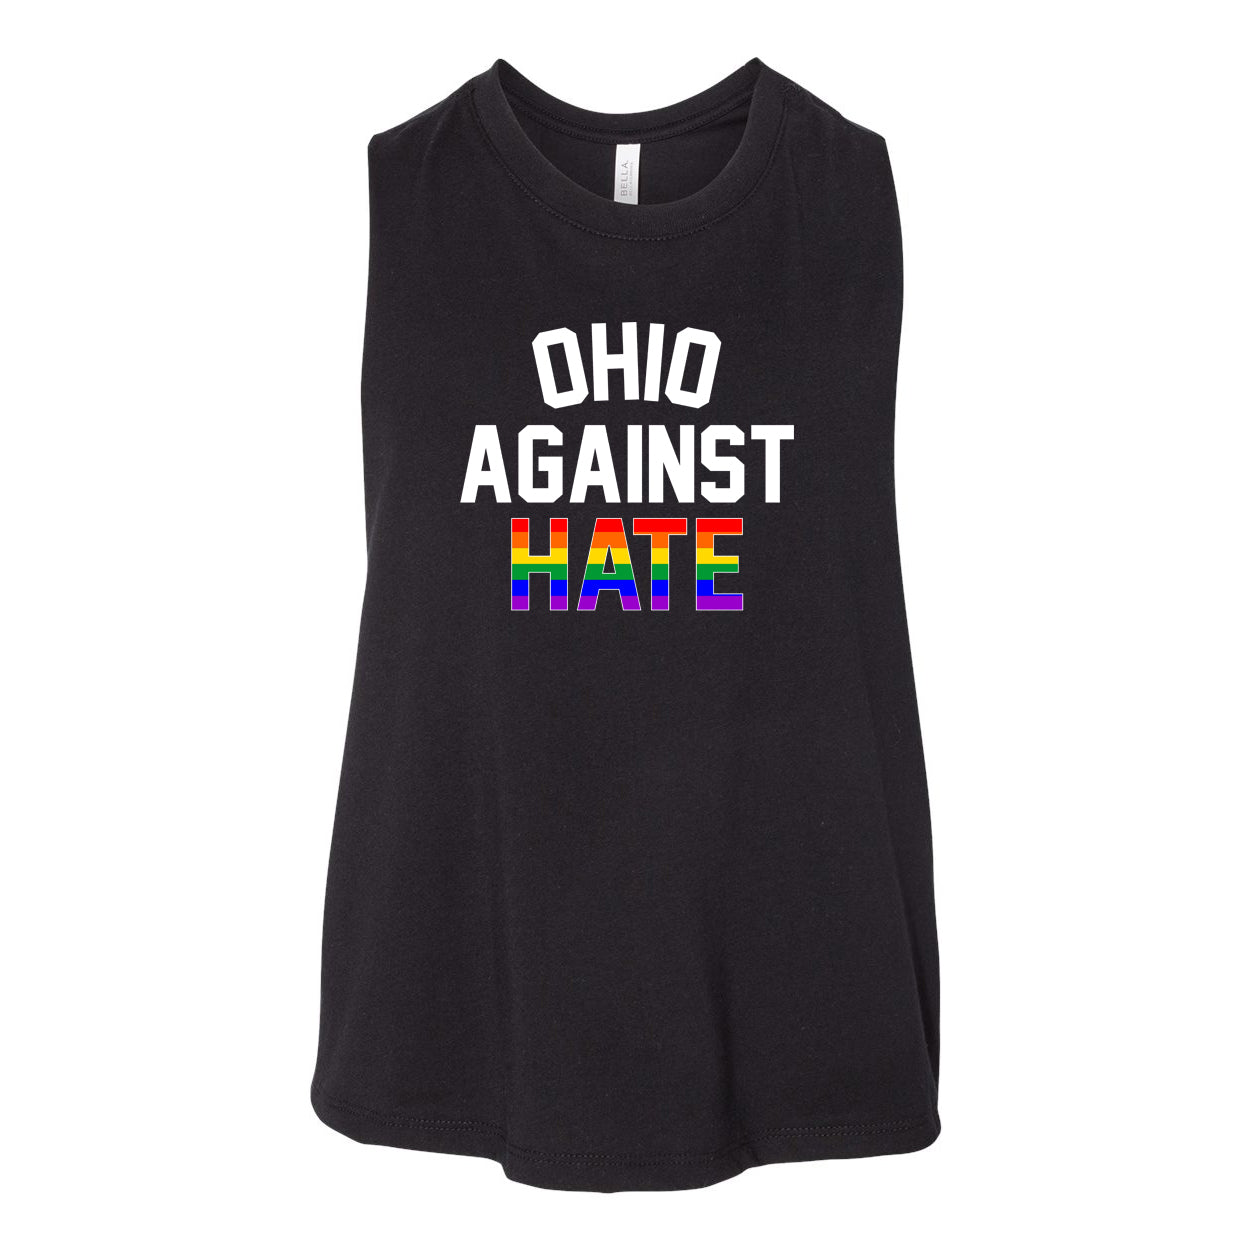 Ohio Against Hate Women's Racerback Cropped Tank